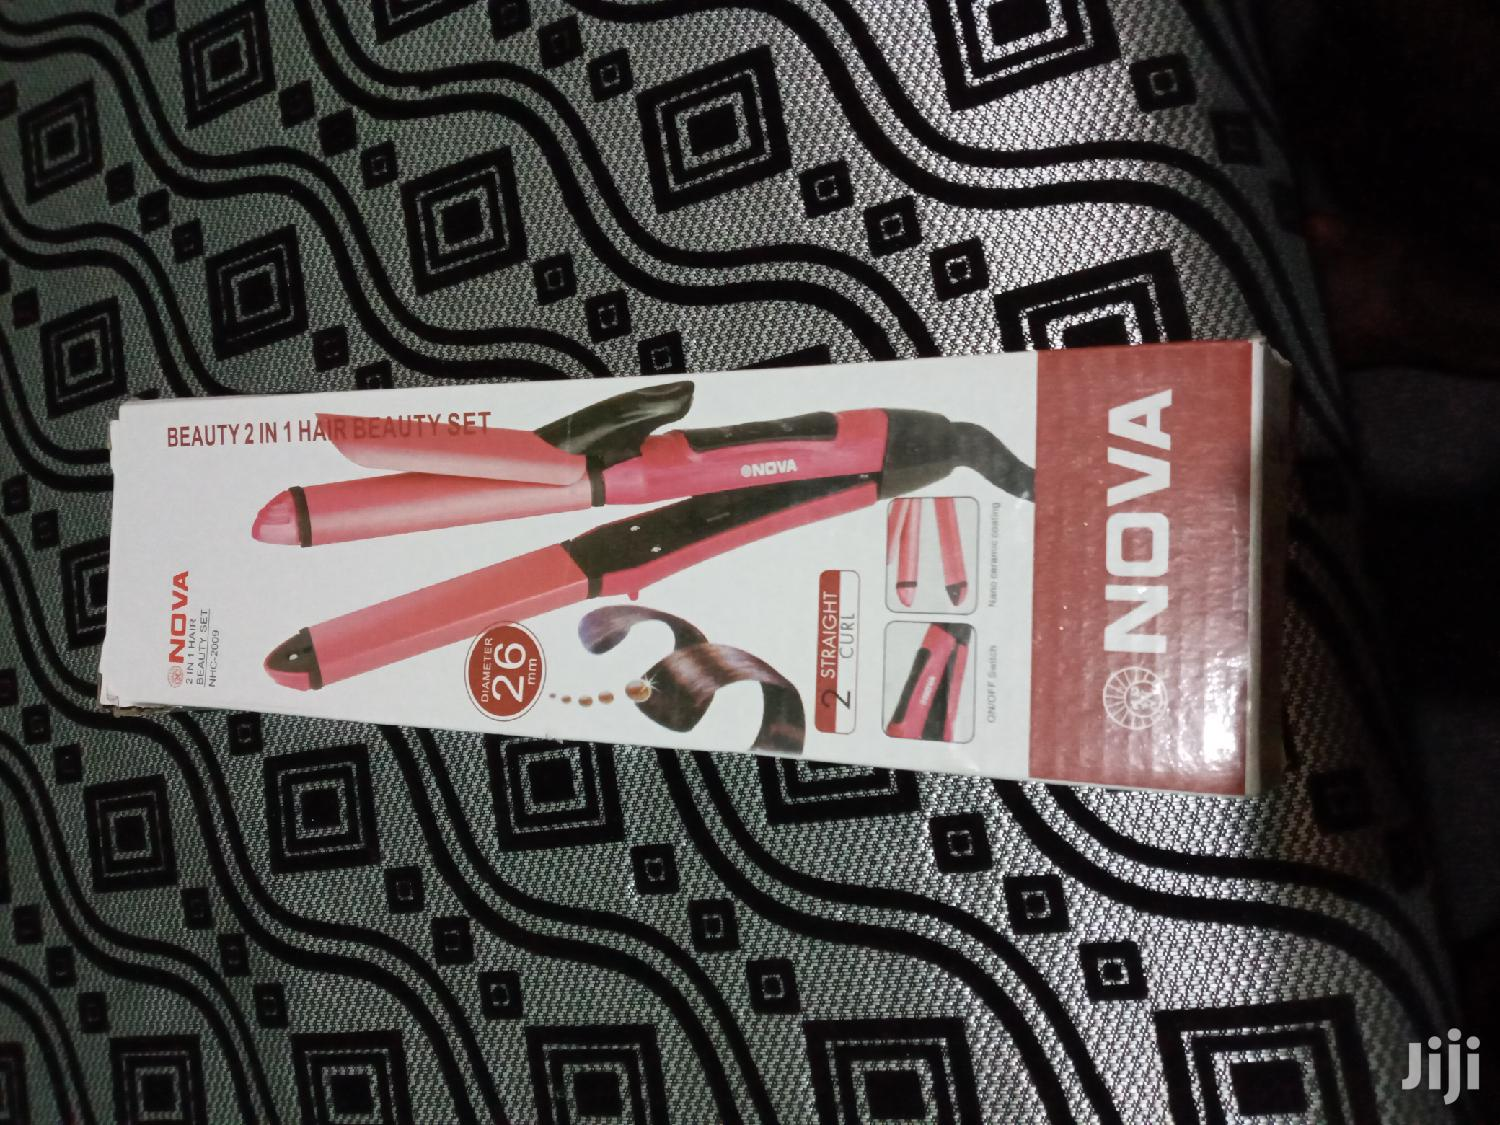 Brand New Nova Hair Straightener And Curler | Tools & Accessories for sale in Achimota, Greater Accra, Ghana